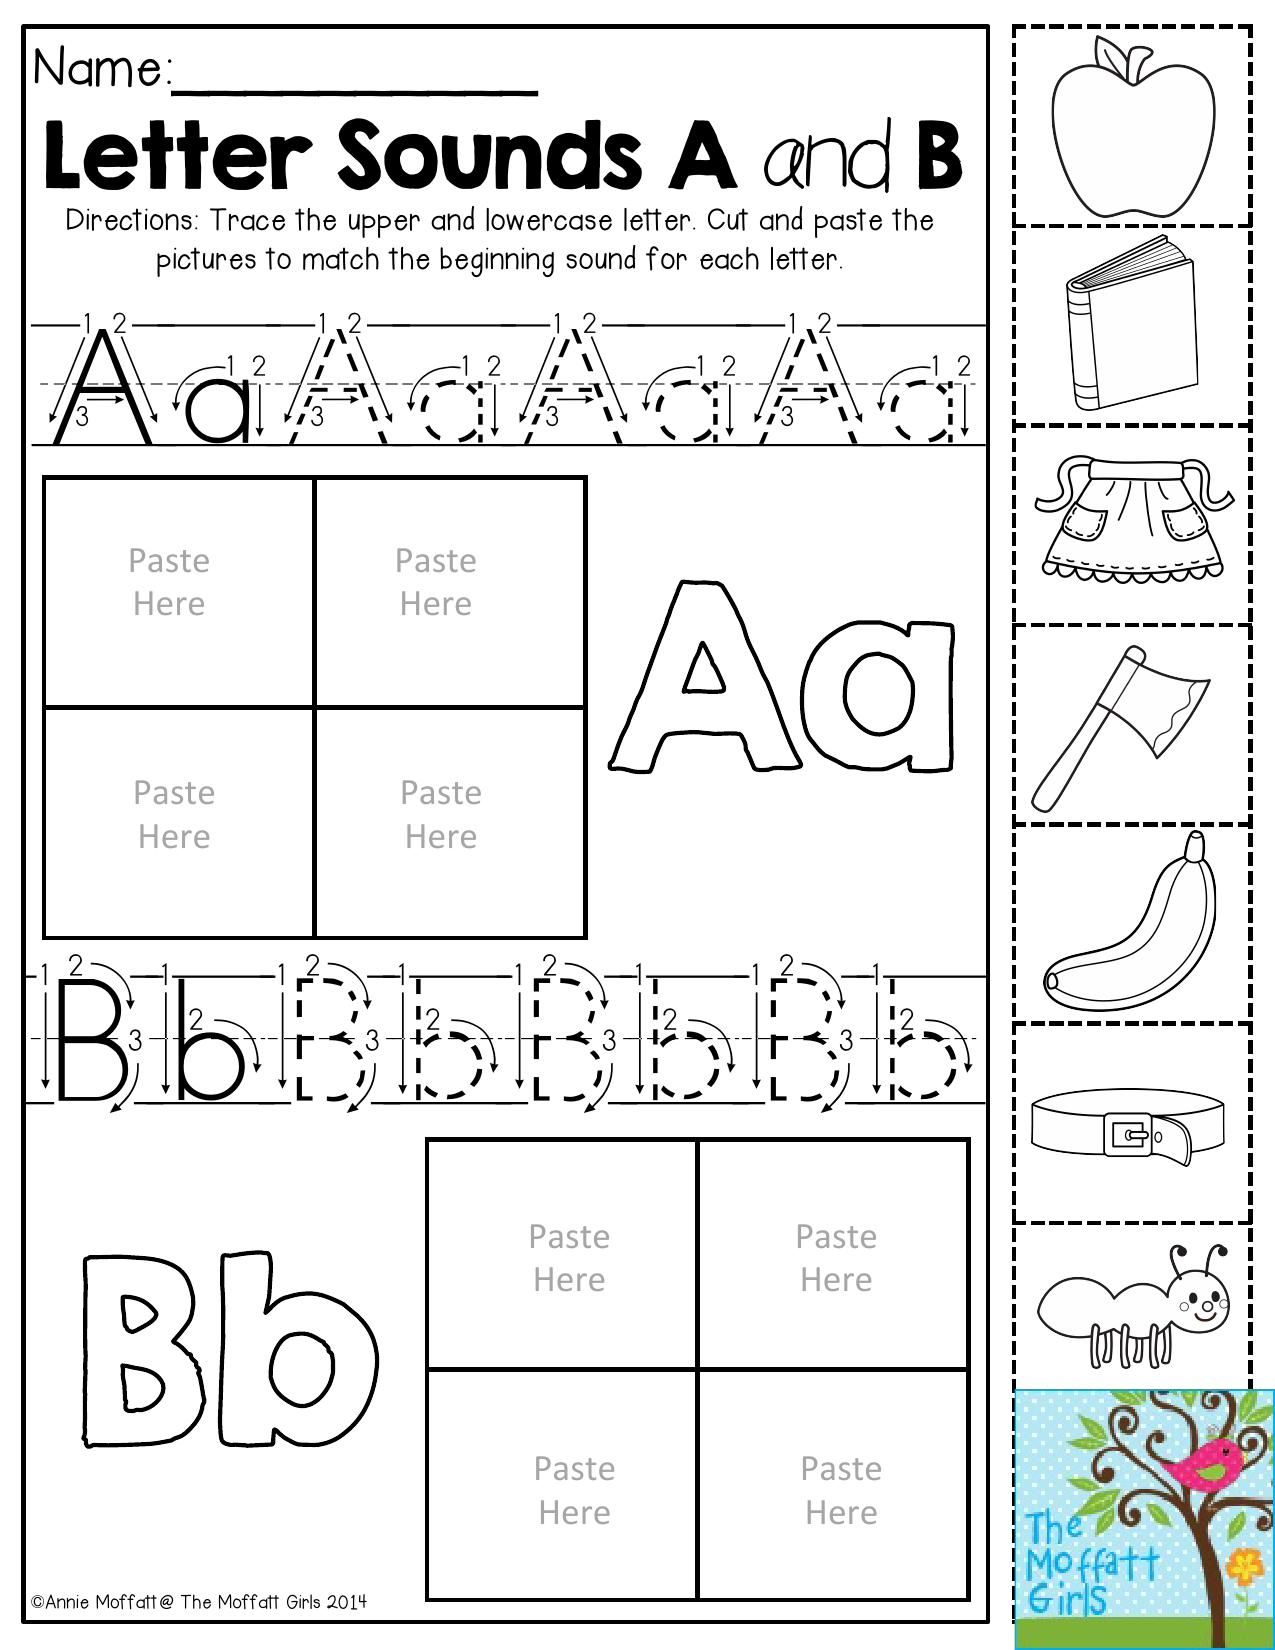 Letter Sounds Trace The Letters Then Cut And Paste The Pictures To Match The Beginning Sound